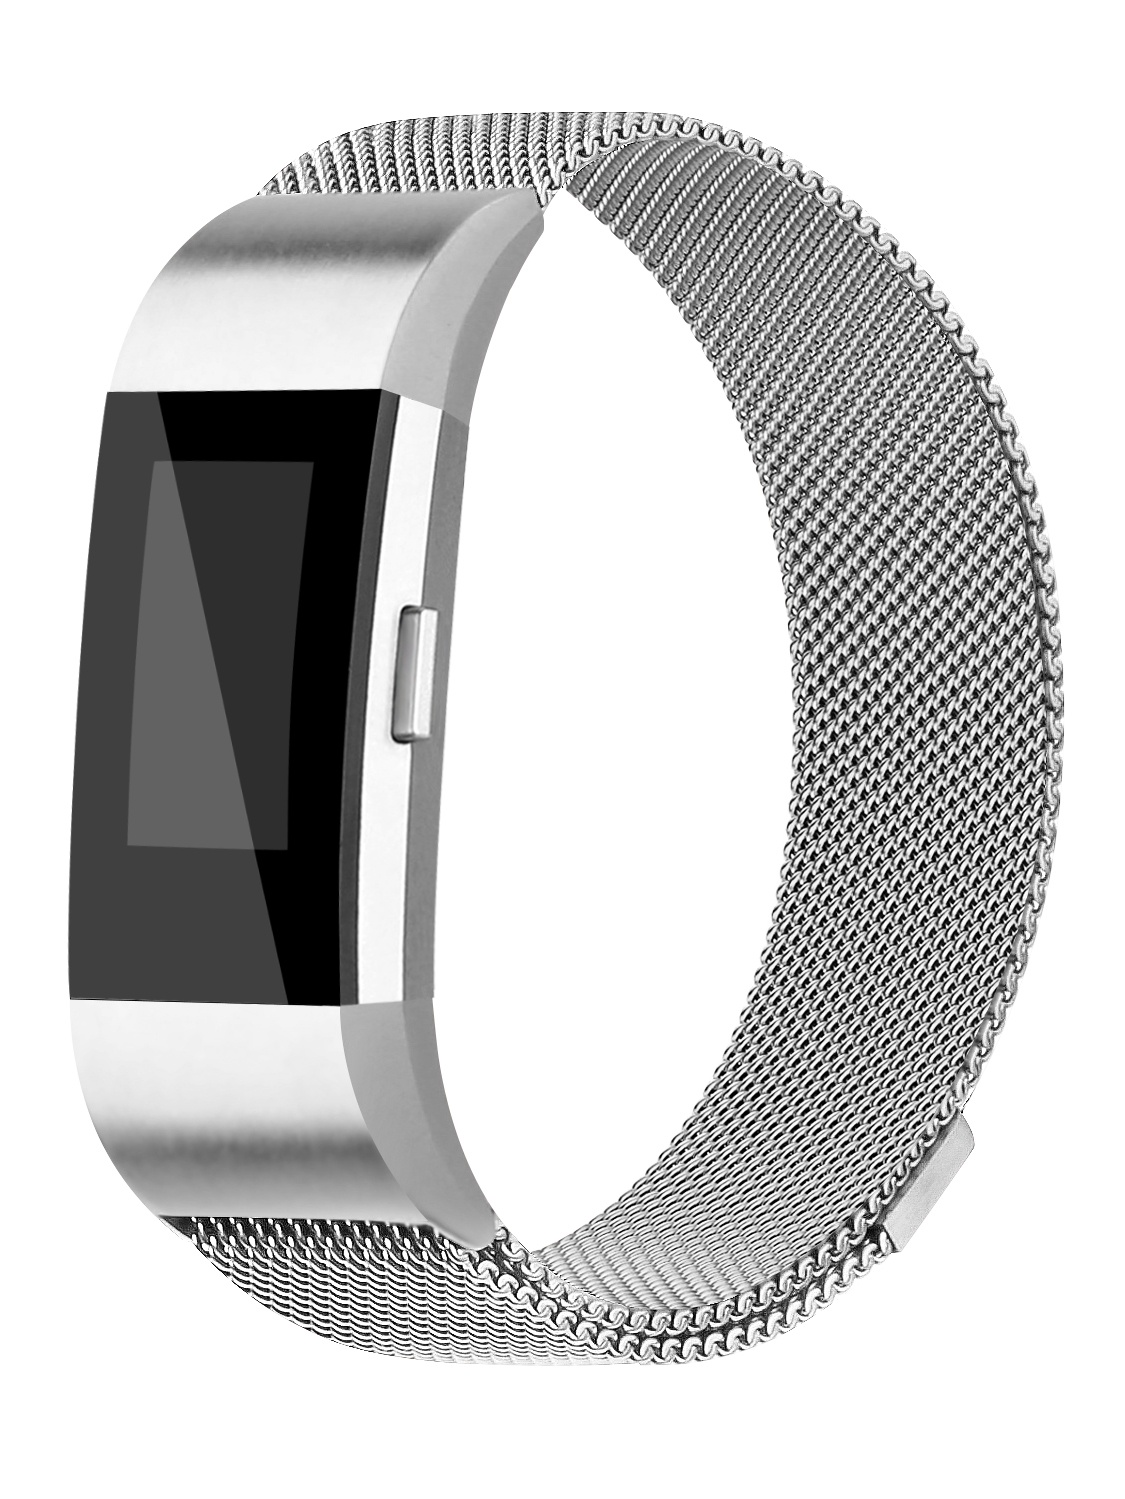 Adepoy Replacemnt Bands for Fitbit Charge 2 Milanese Stainless Steel Bracelet with Strong Magnet Lock